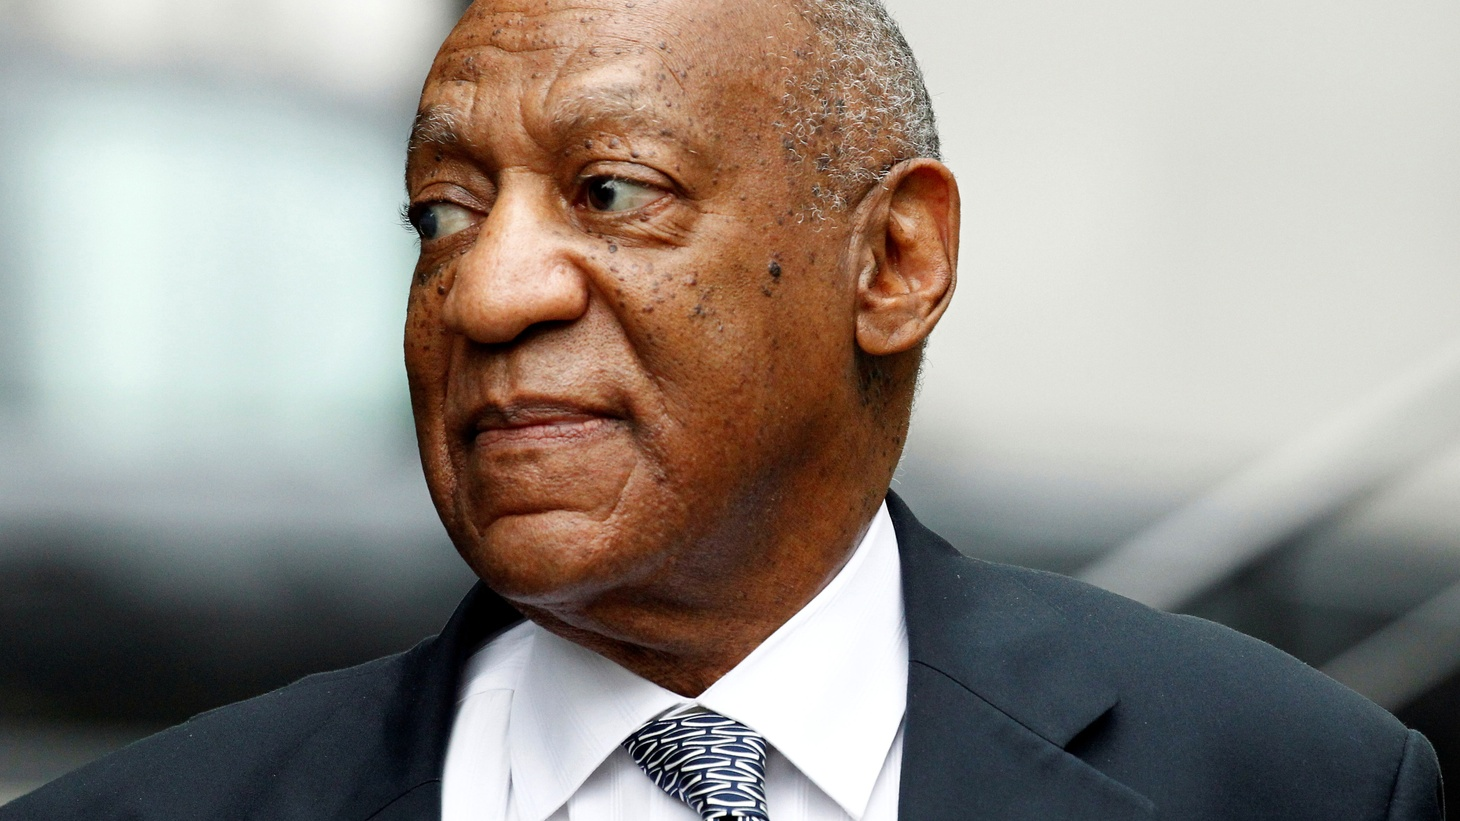 After 52 hours of deliberation, the jury in Bill Cosby's sexual assault case failed to reach a verdict and a mistrial was declared. Cosby could face a new trial as soon as October. His defense team says he is vindicated. But prosecutors are calling for more women to step forward.